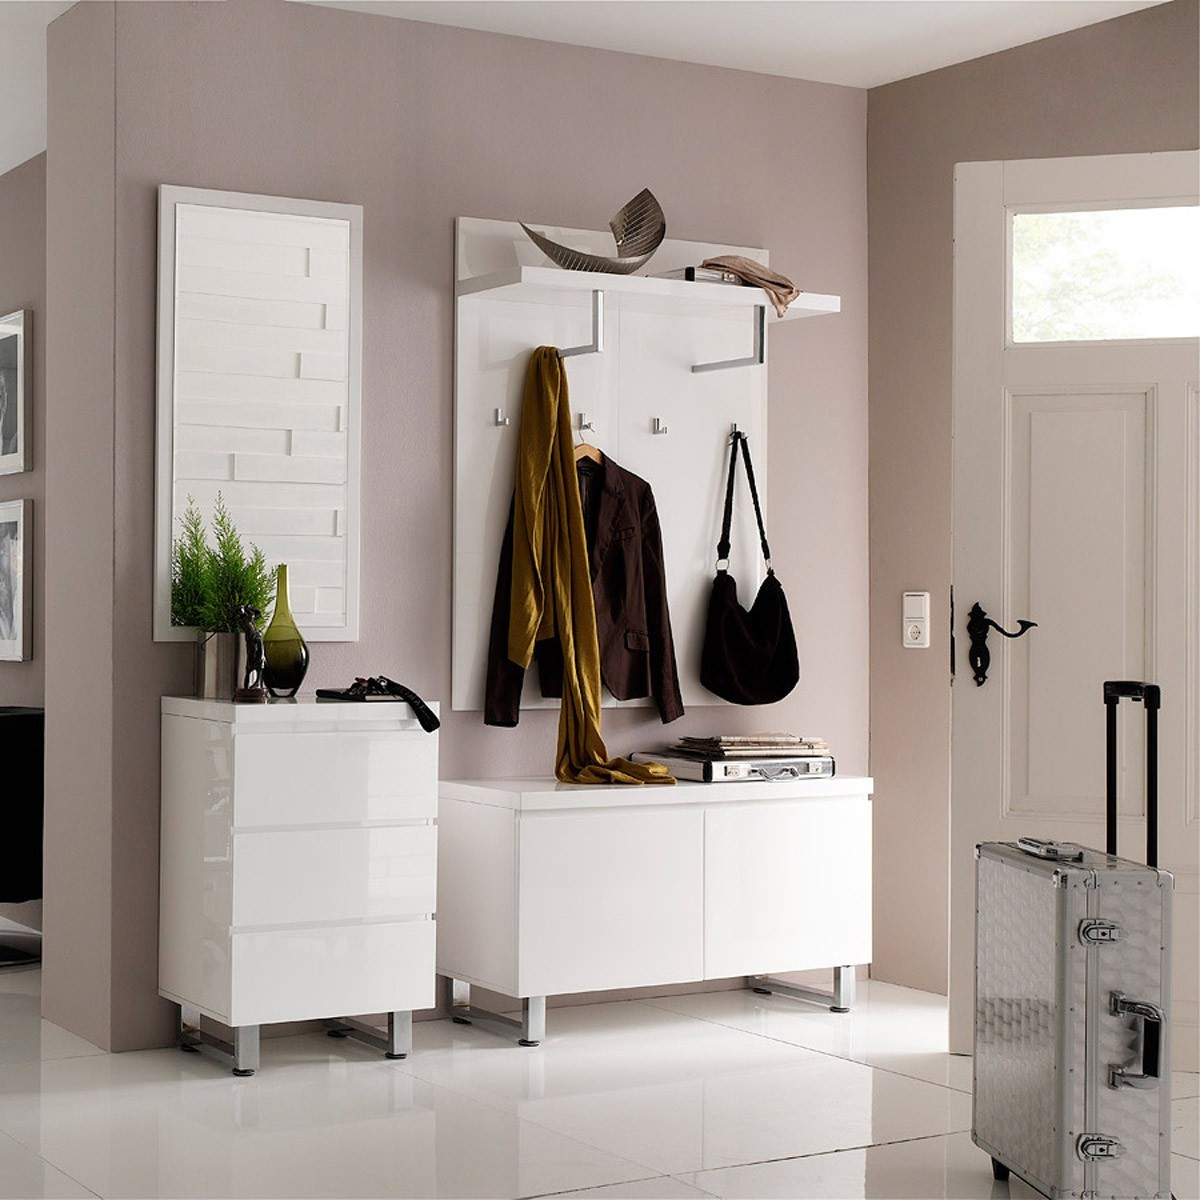 moderne garderobe ideen in wei garderobe set aequivalere. Black Bedroom Furniture Sets. Home Design Ideas